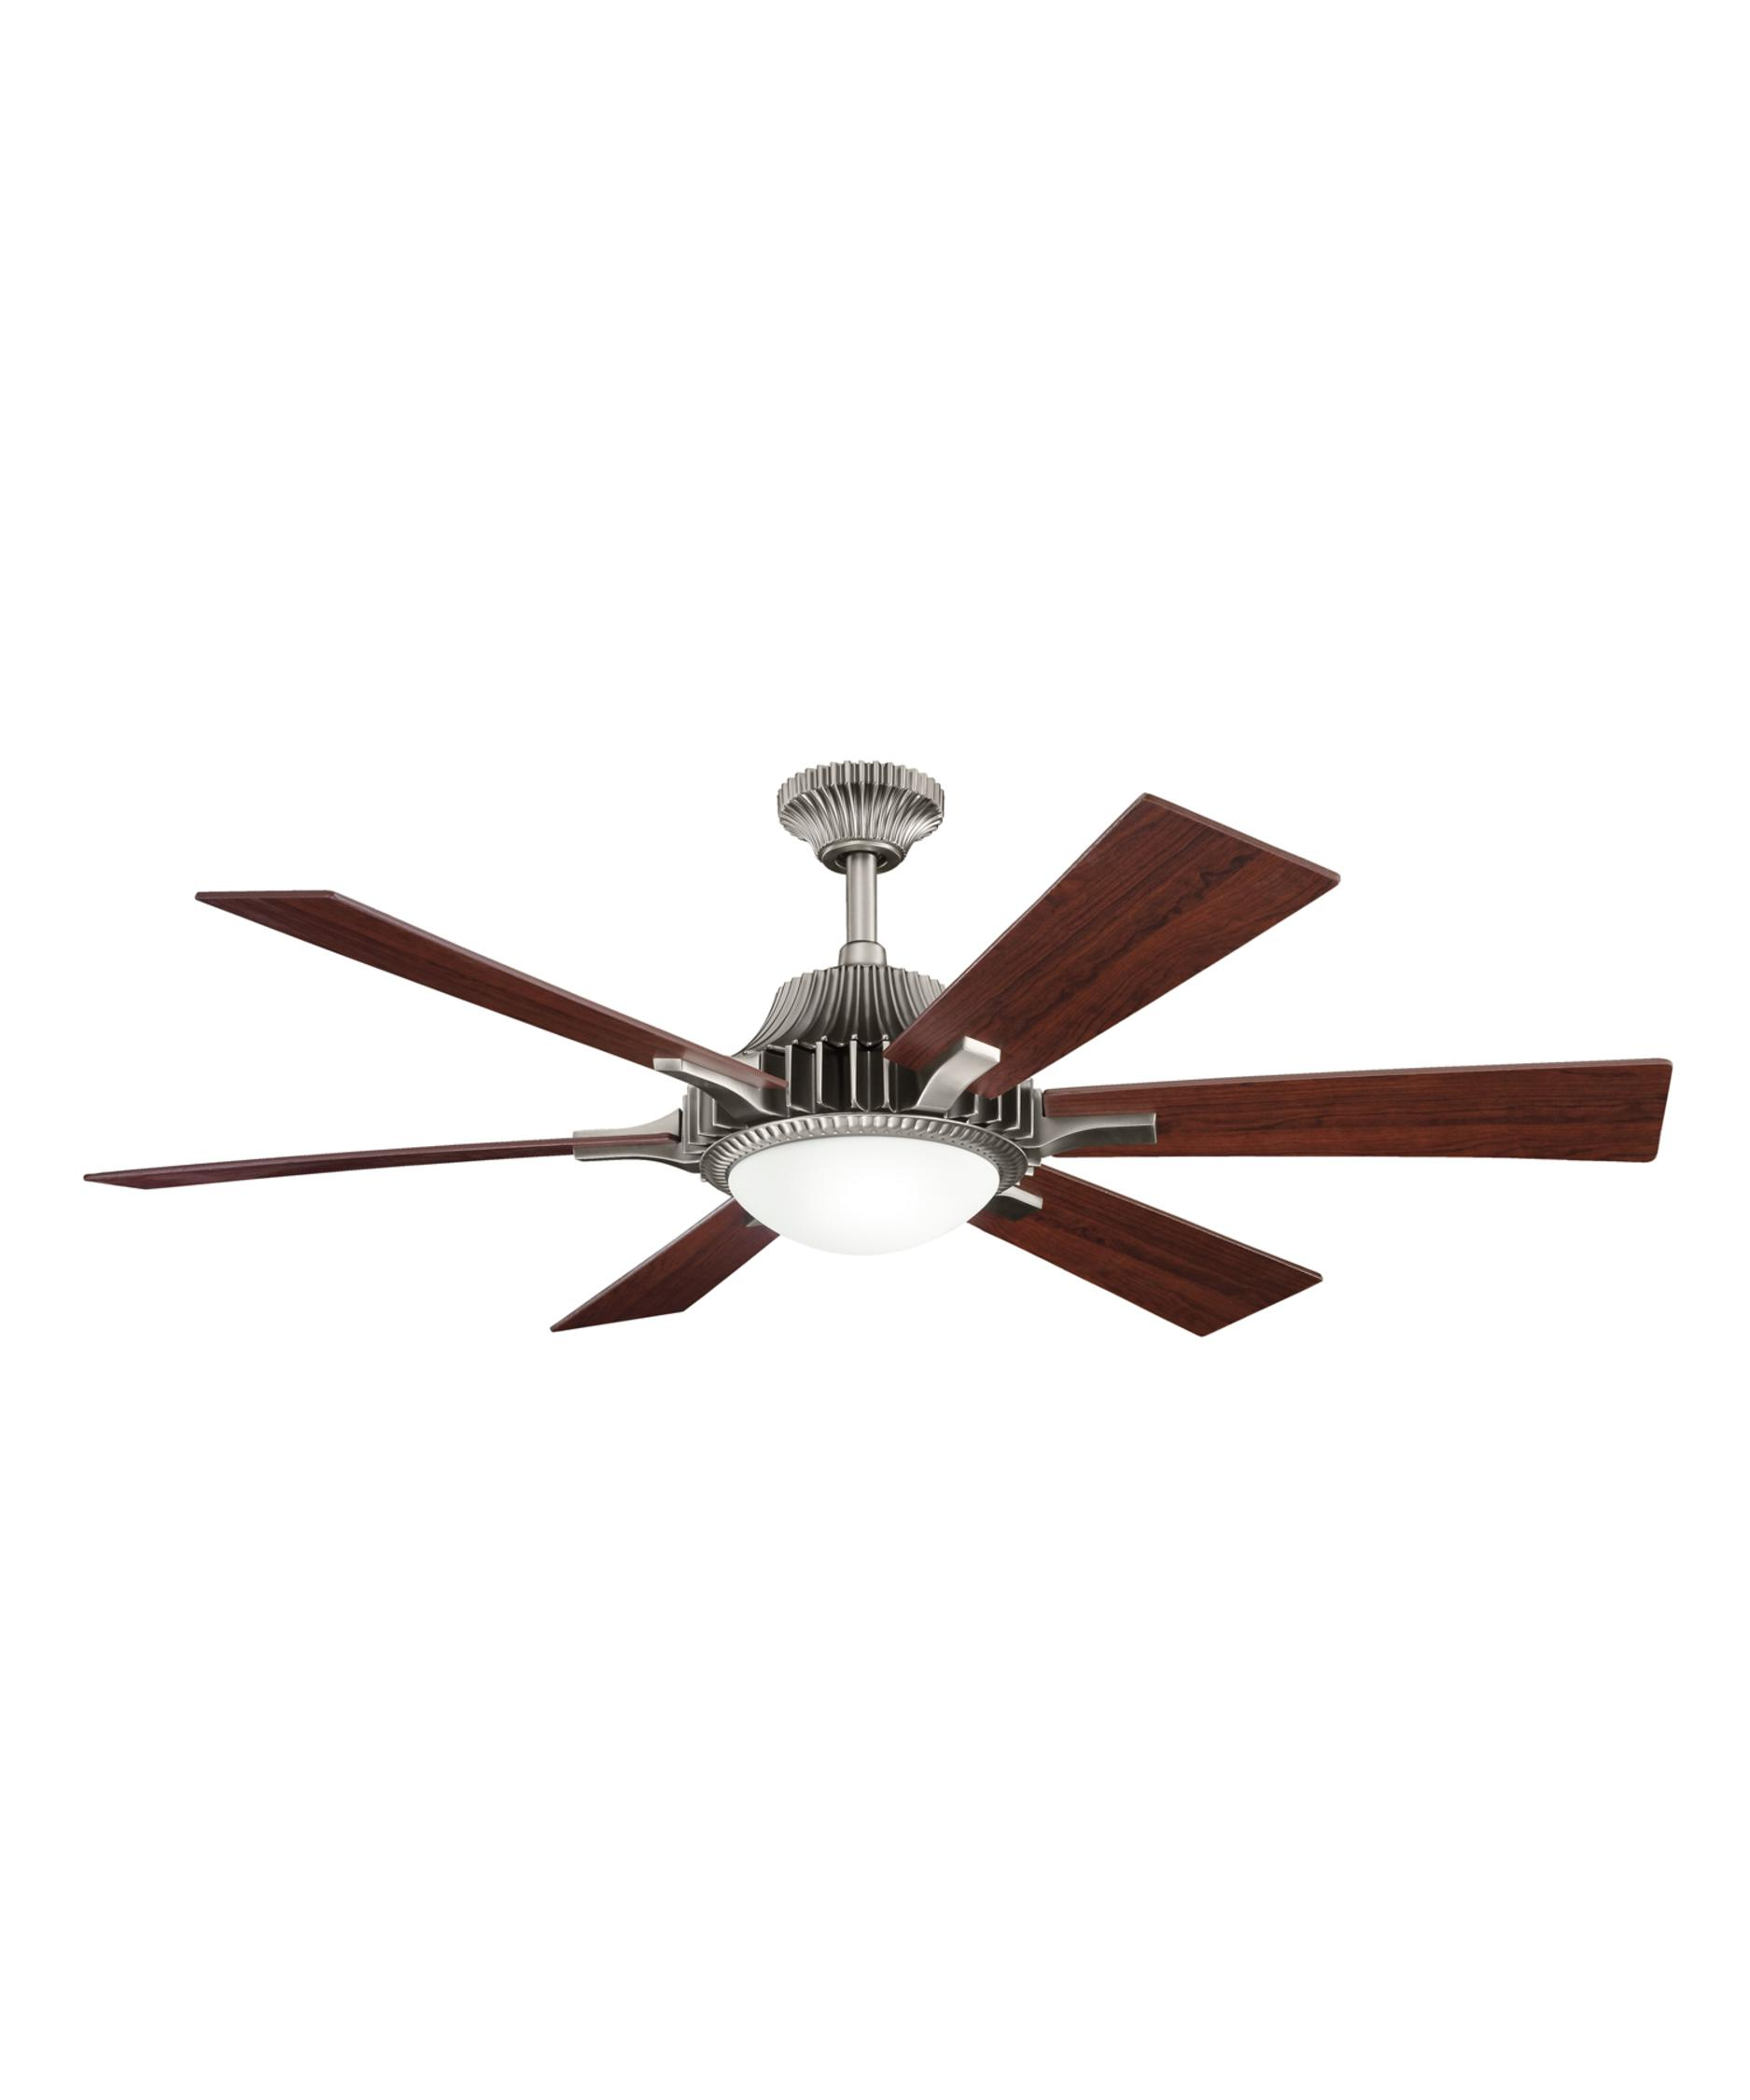 shown in antique pewter finish and etched cased opal glass - Kichler Fans